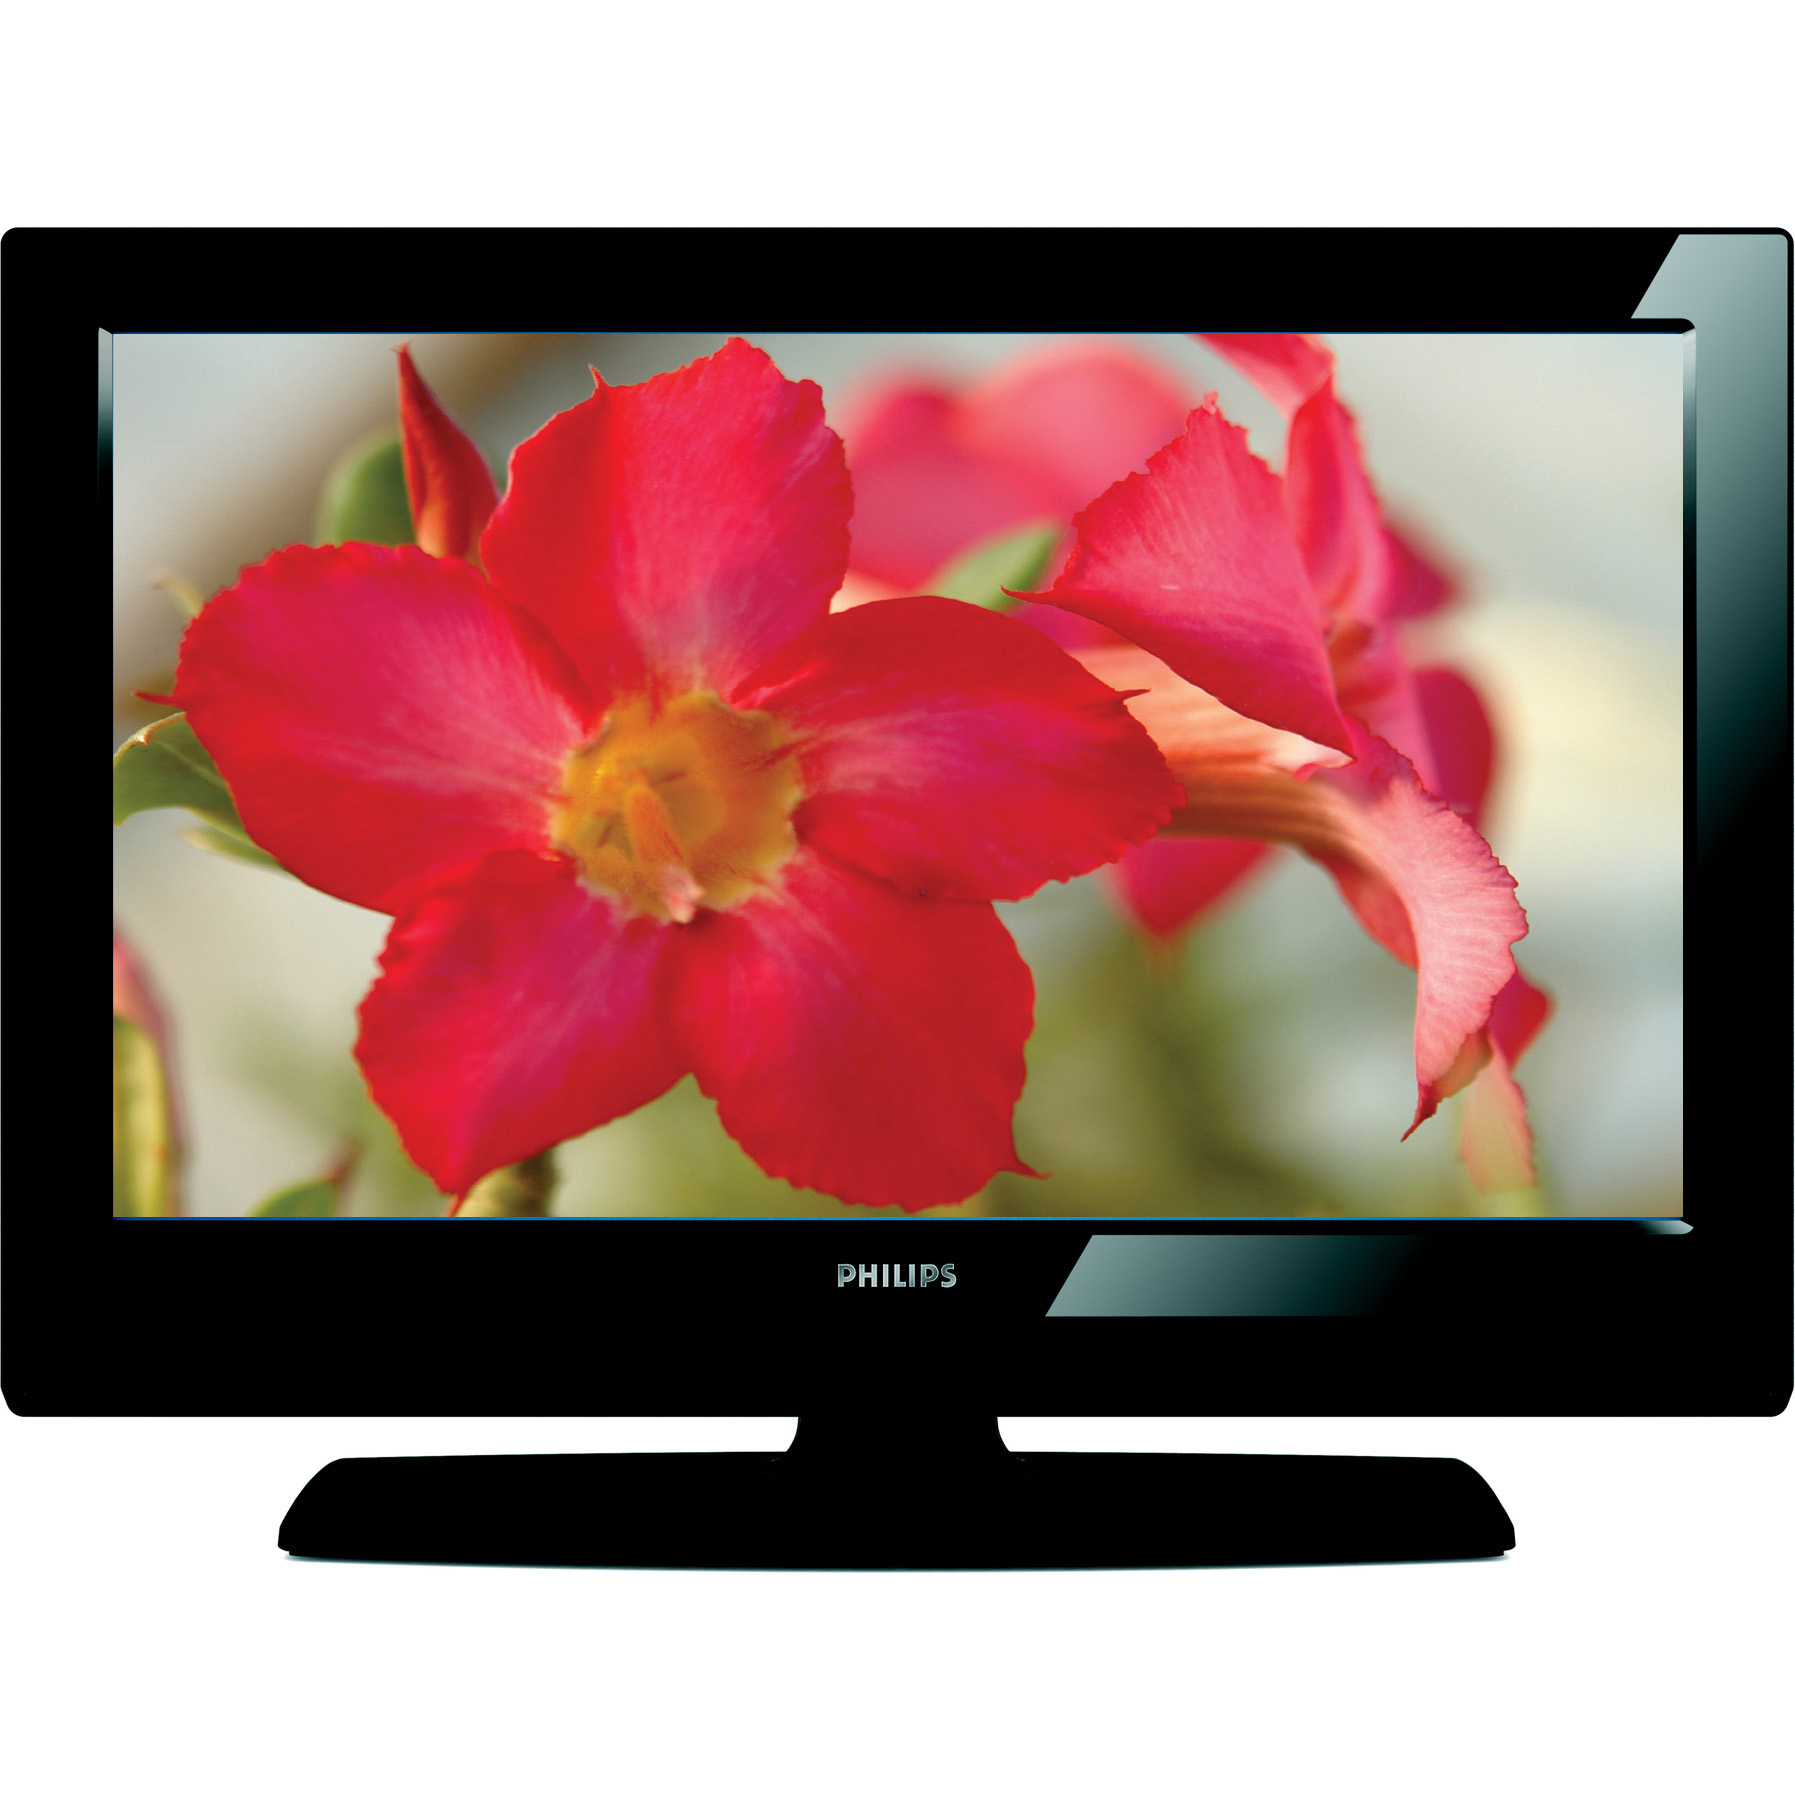 Advice on LCD TV Buying